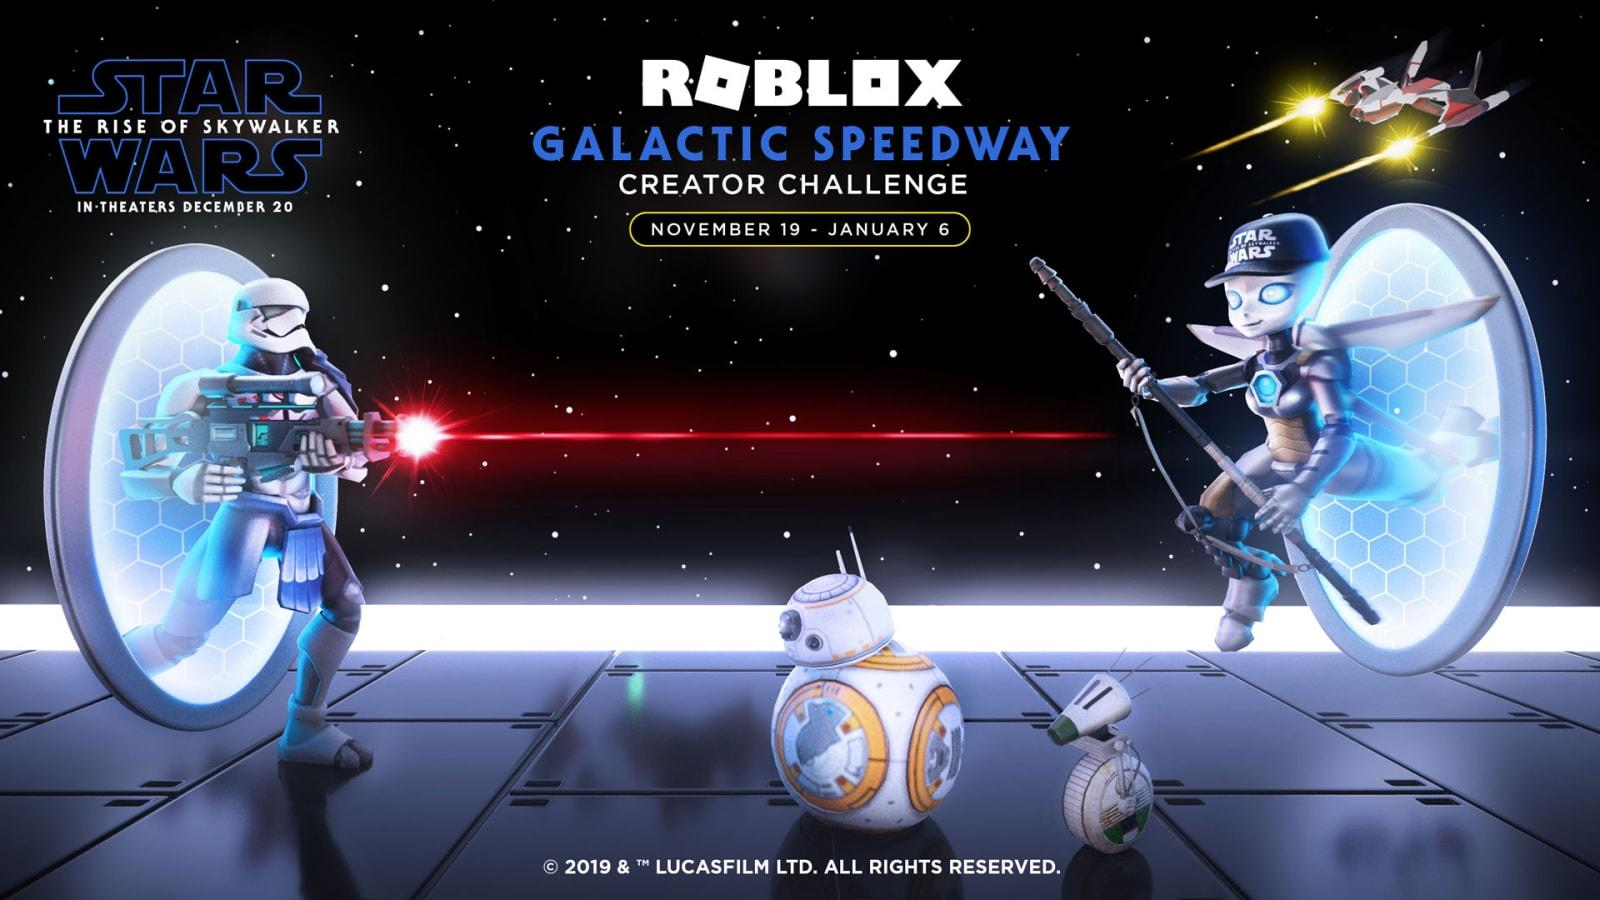 Roblox Wants You To Build Star Wars Speeder To Celebrate Rise Of Skywalker Engadget